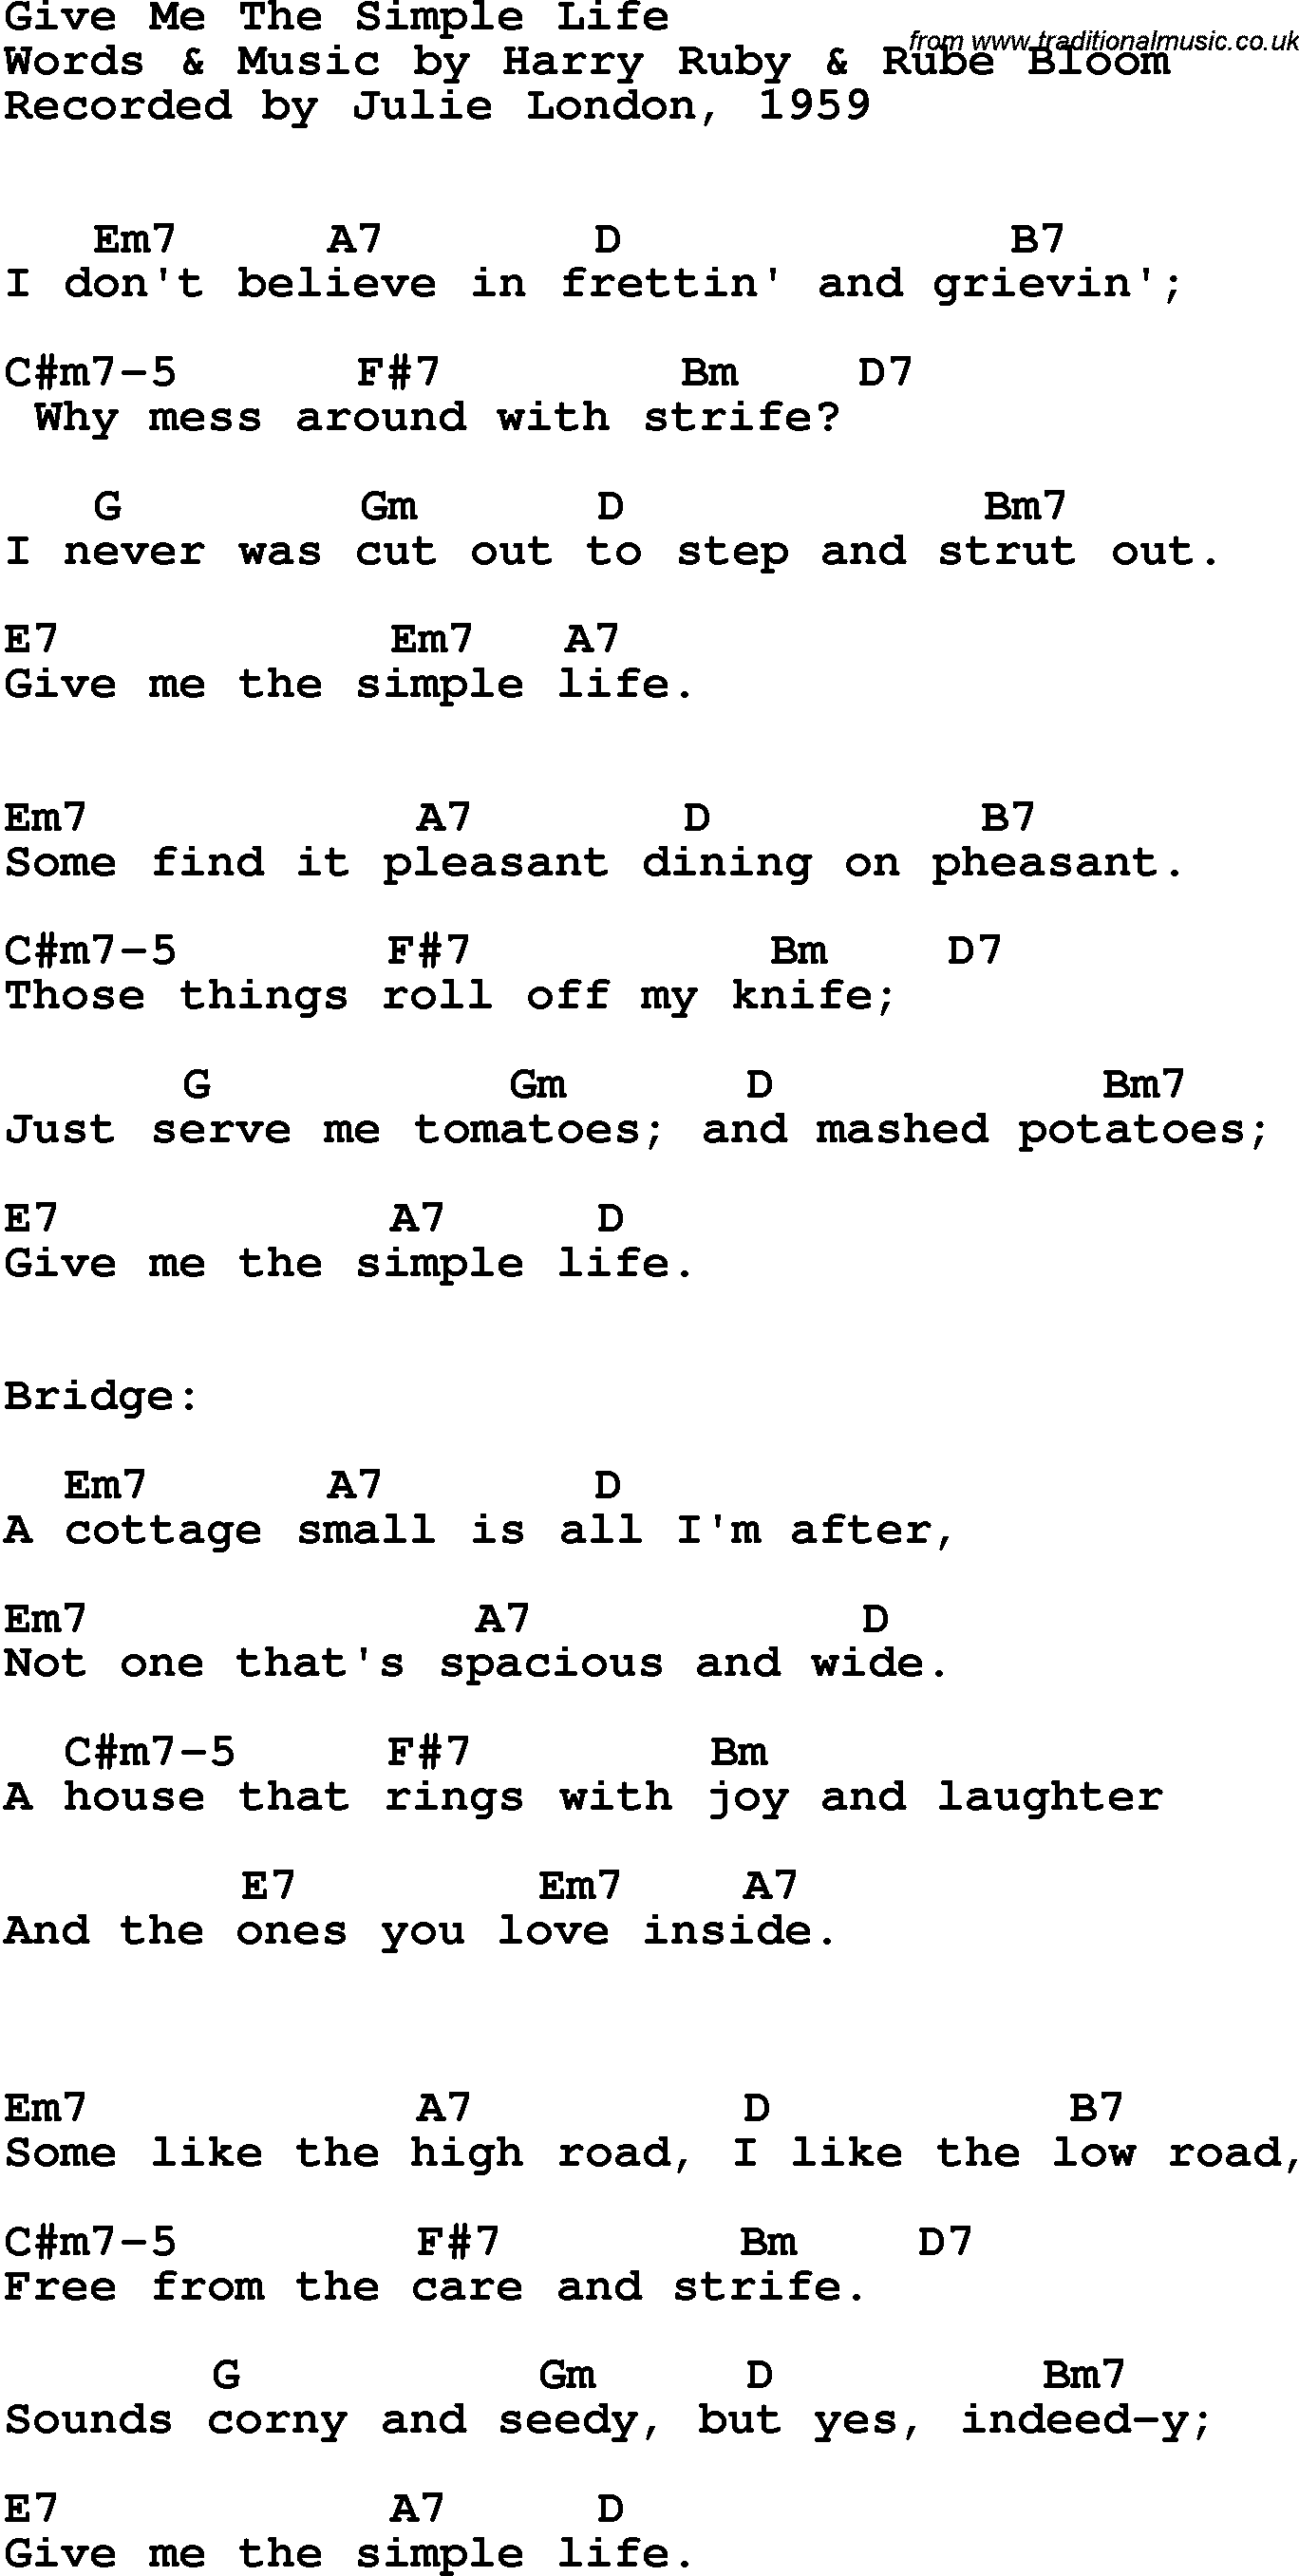 Song lyrics with guitar chords for give me the simple life julie song lyrics with guitar chords for give me the simple life julie london 1959 hexwebz Choice Image